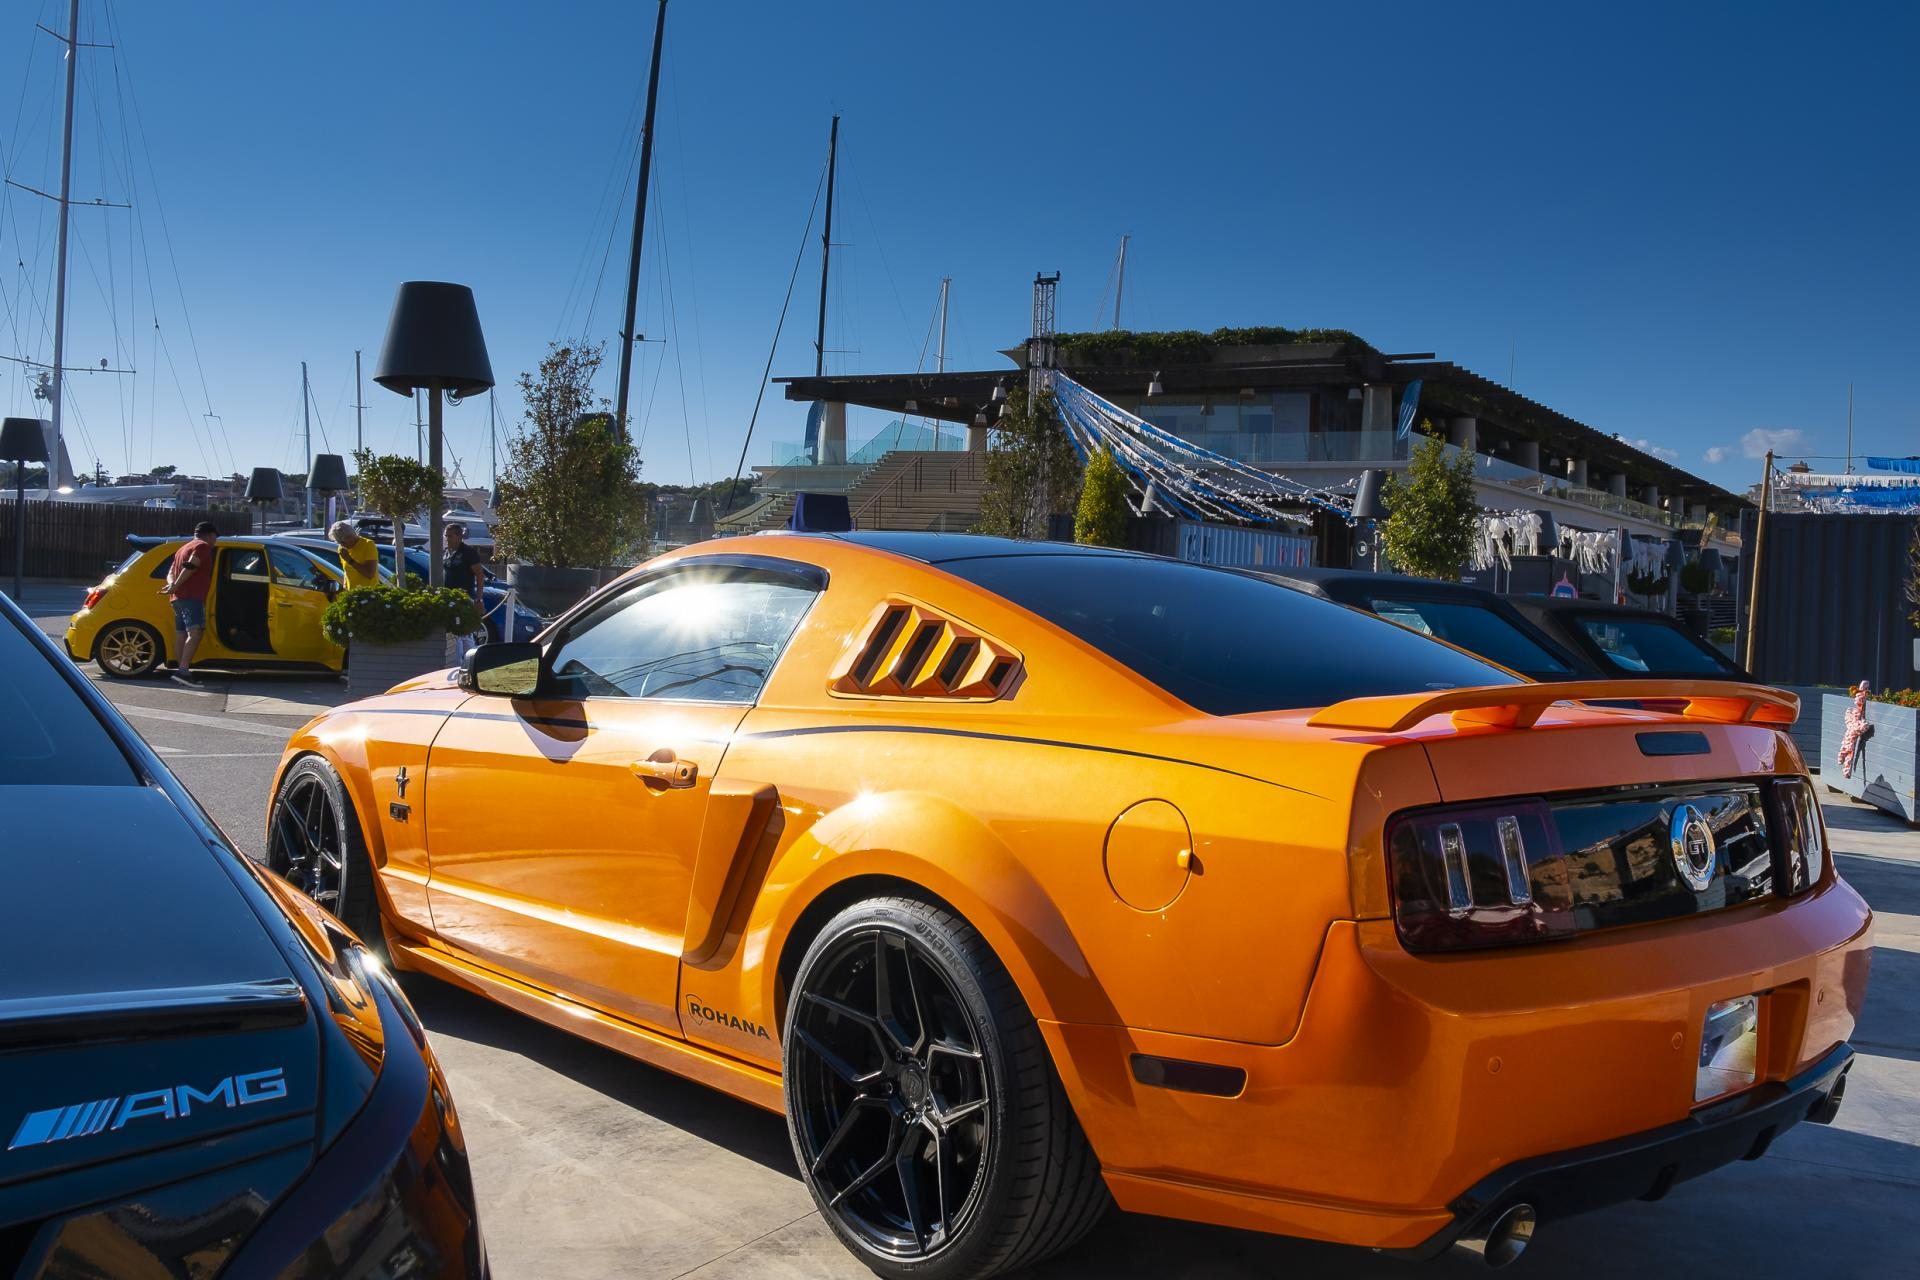 Later Mustang with eye-catching paintwork